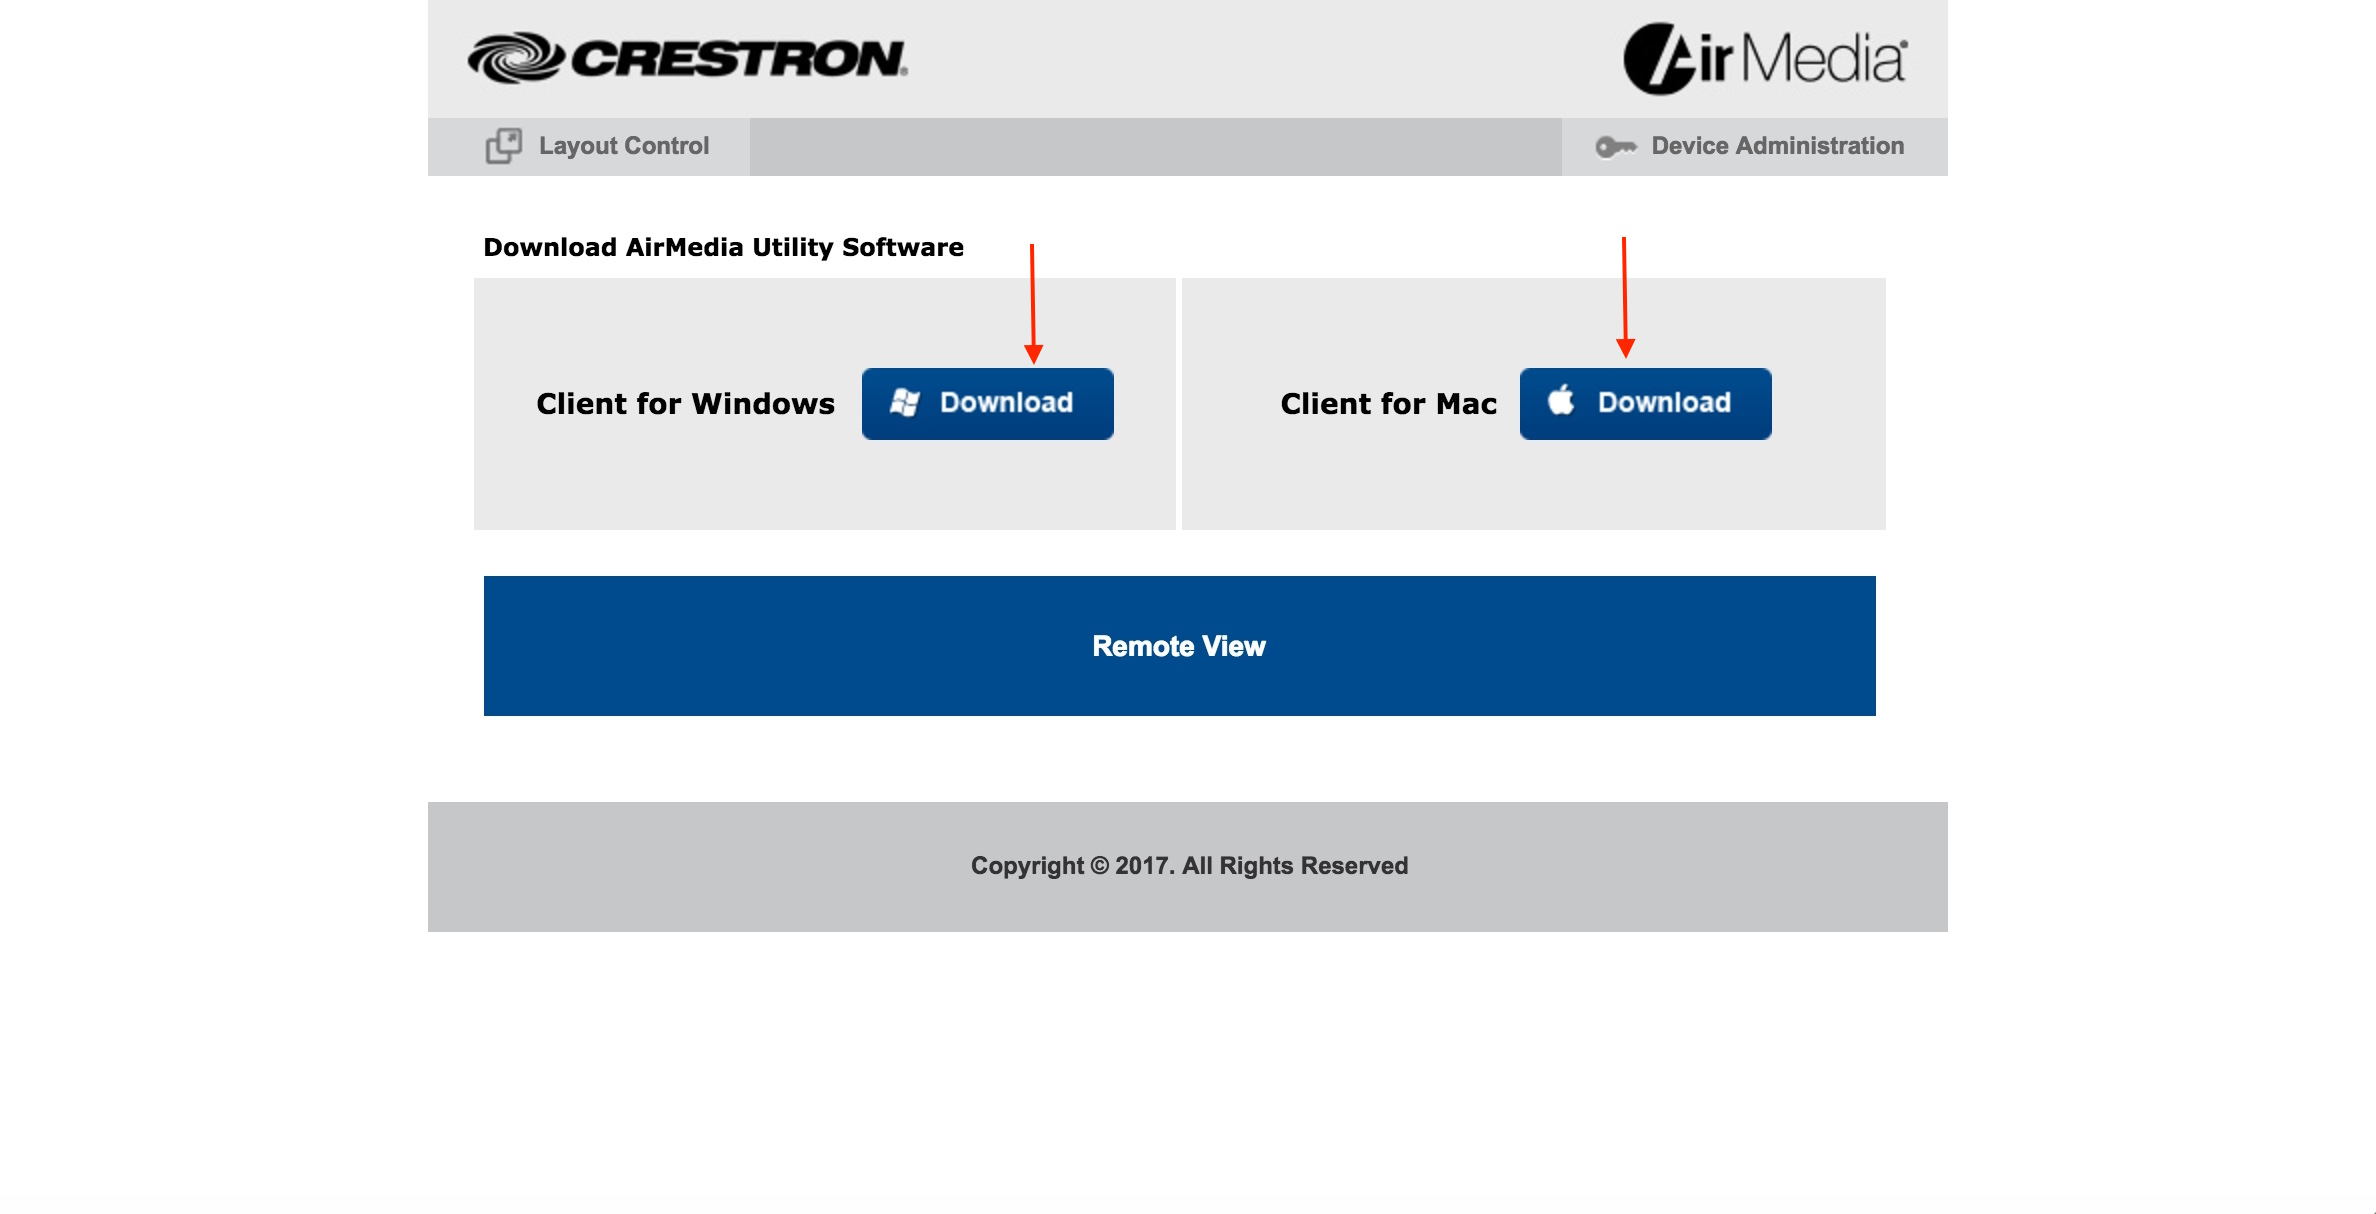 Photo of crestron home page for AirMedia software download